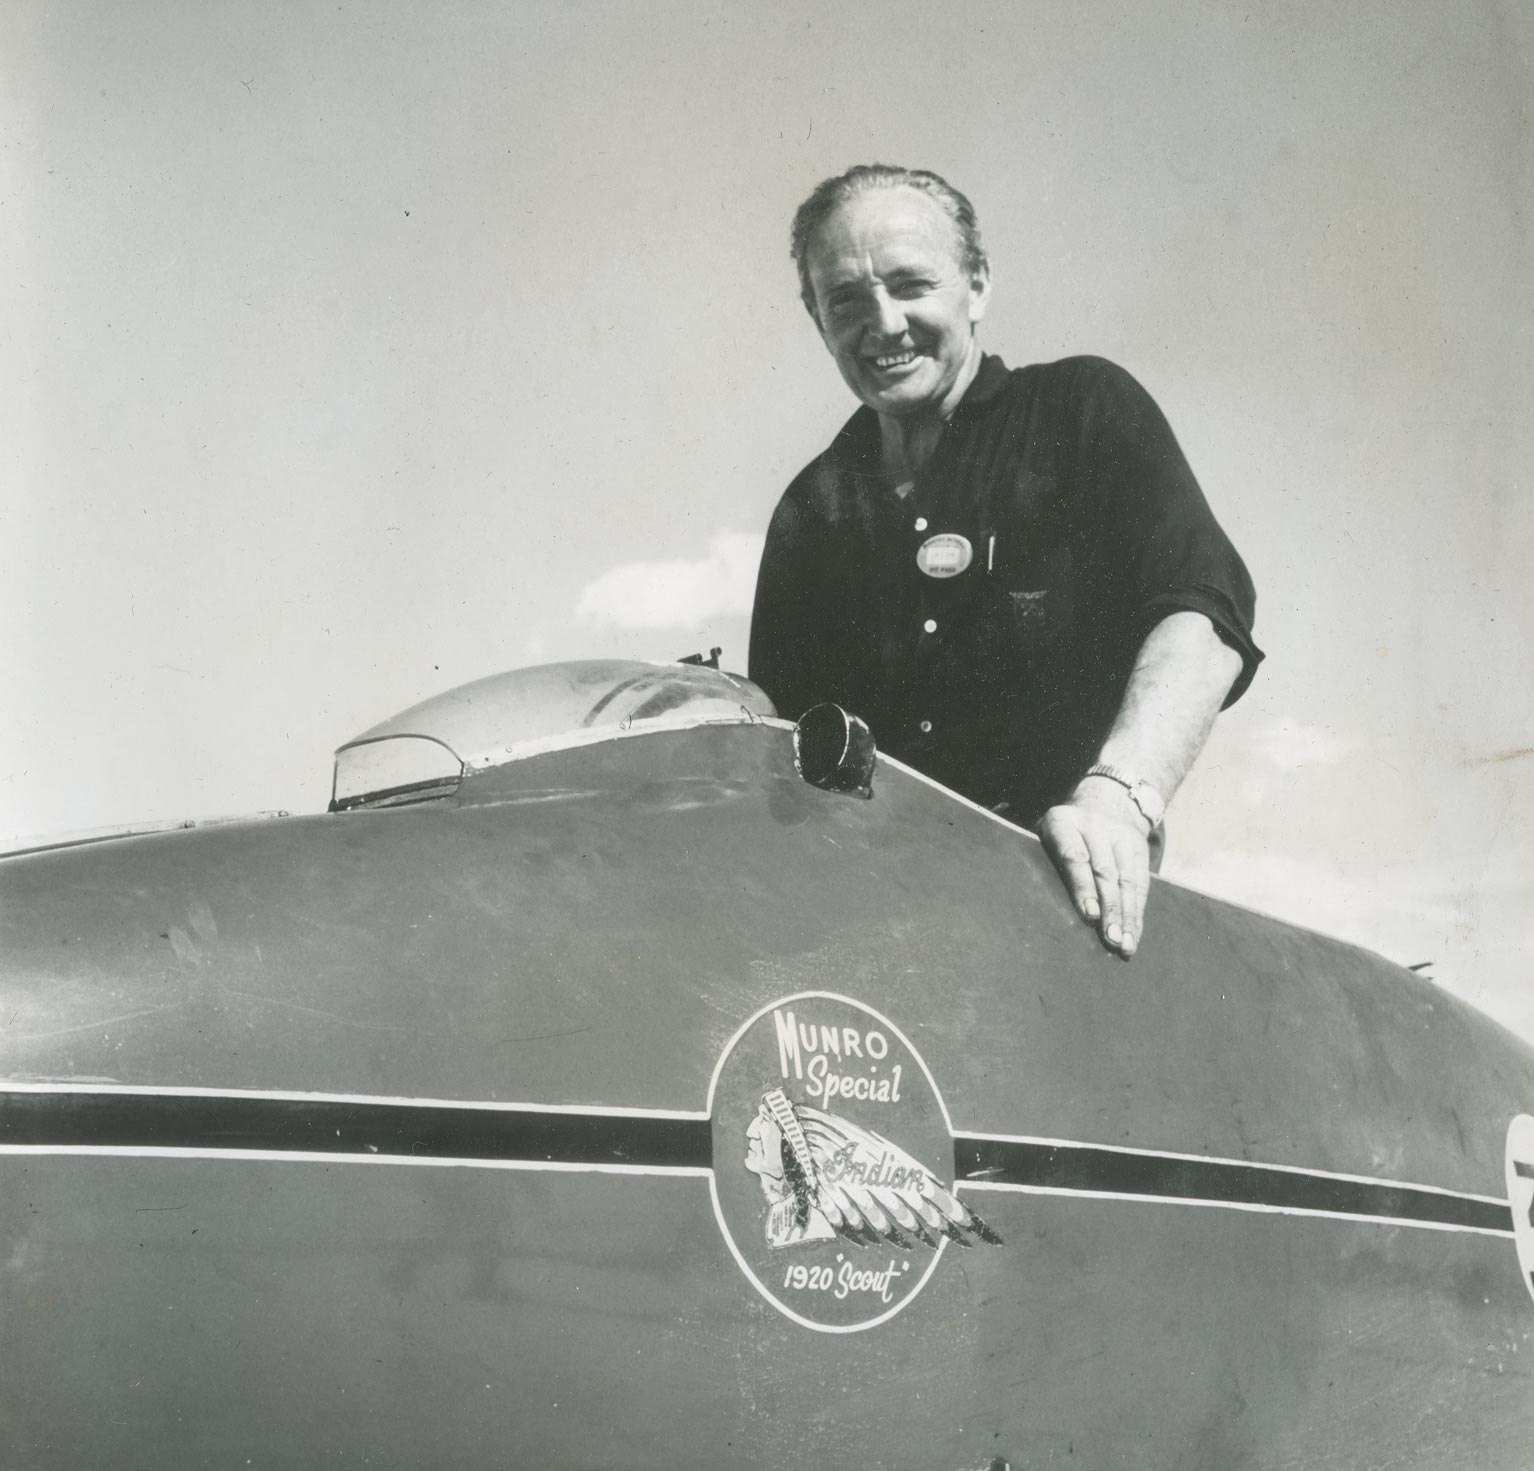 Burt Munro - Photo Courtesy of Baume Mercier - SWAGGER Magazine